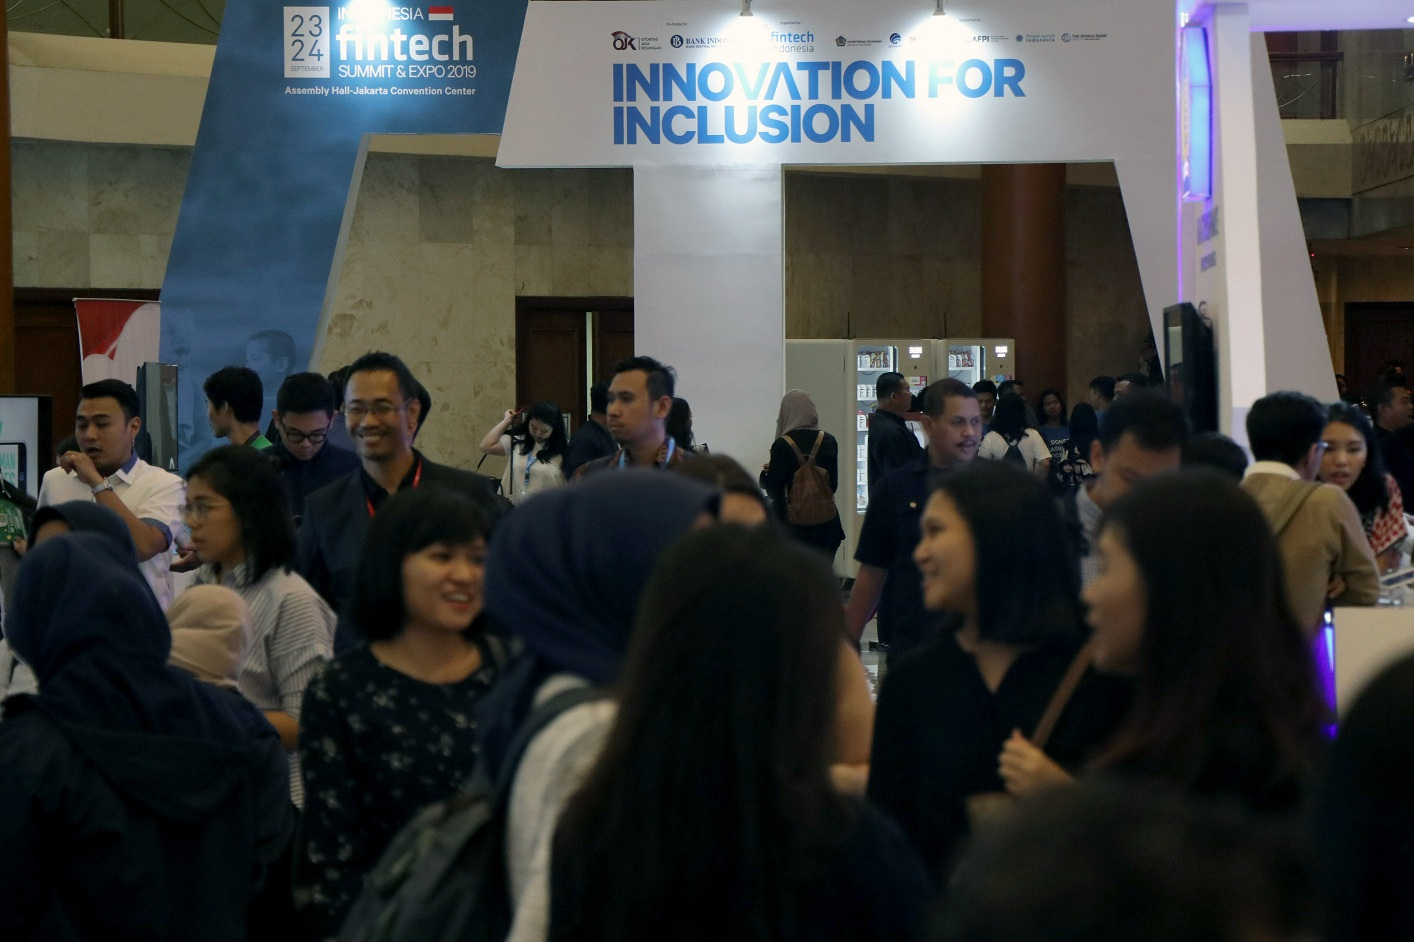 Kemeriahan Indonesia FinTech Summit and Expo 2019